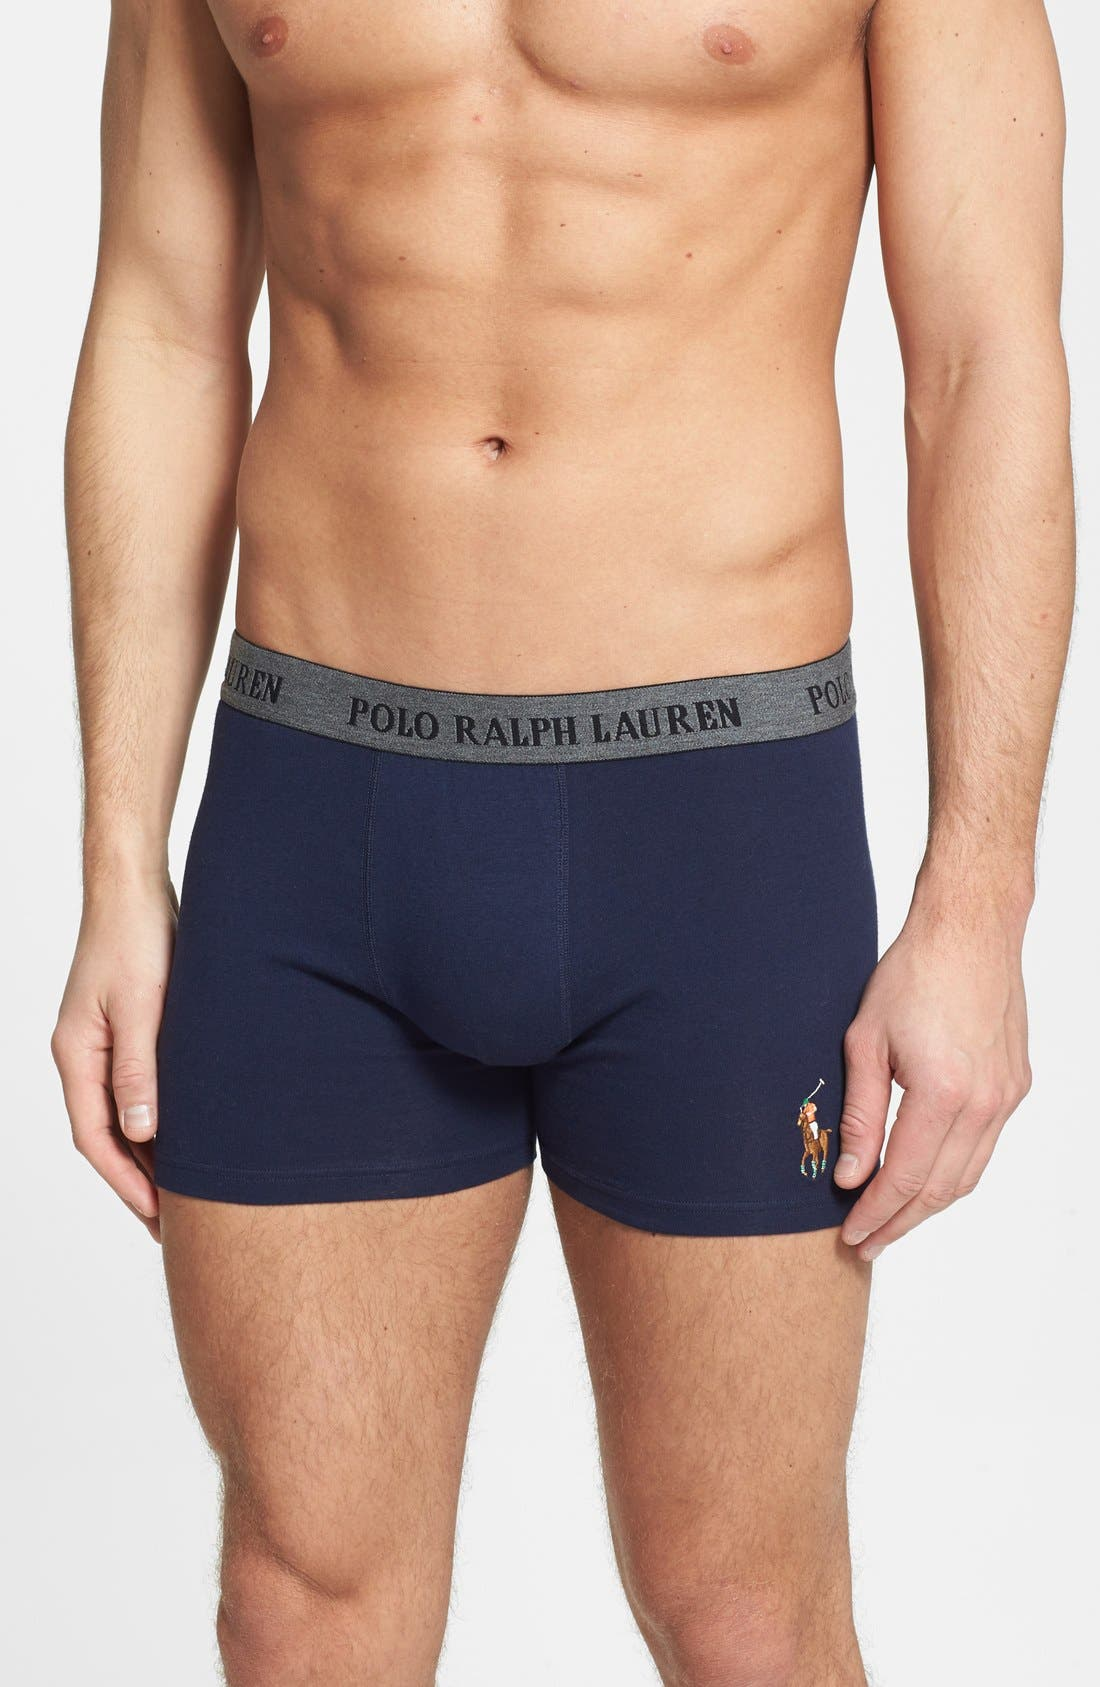 Alternate Image 1 Selected - Polo Ralph Lauren Boxer Briefs (2 for $36.50)